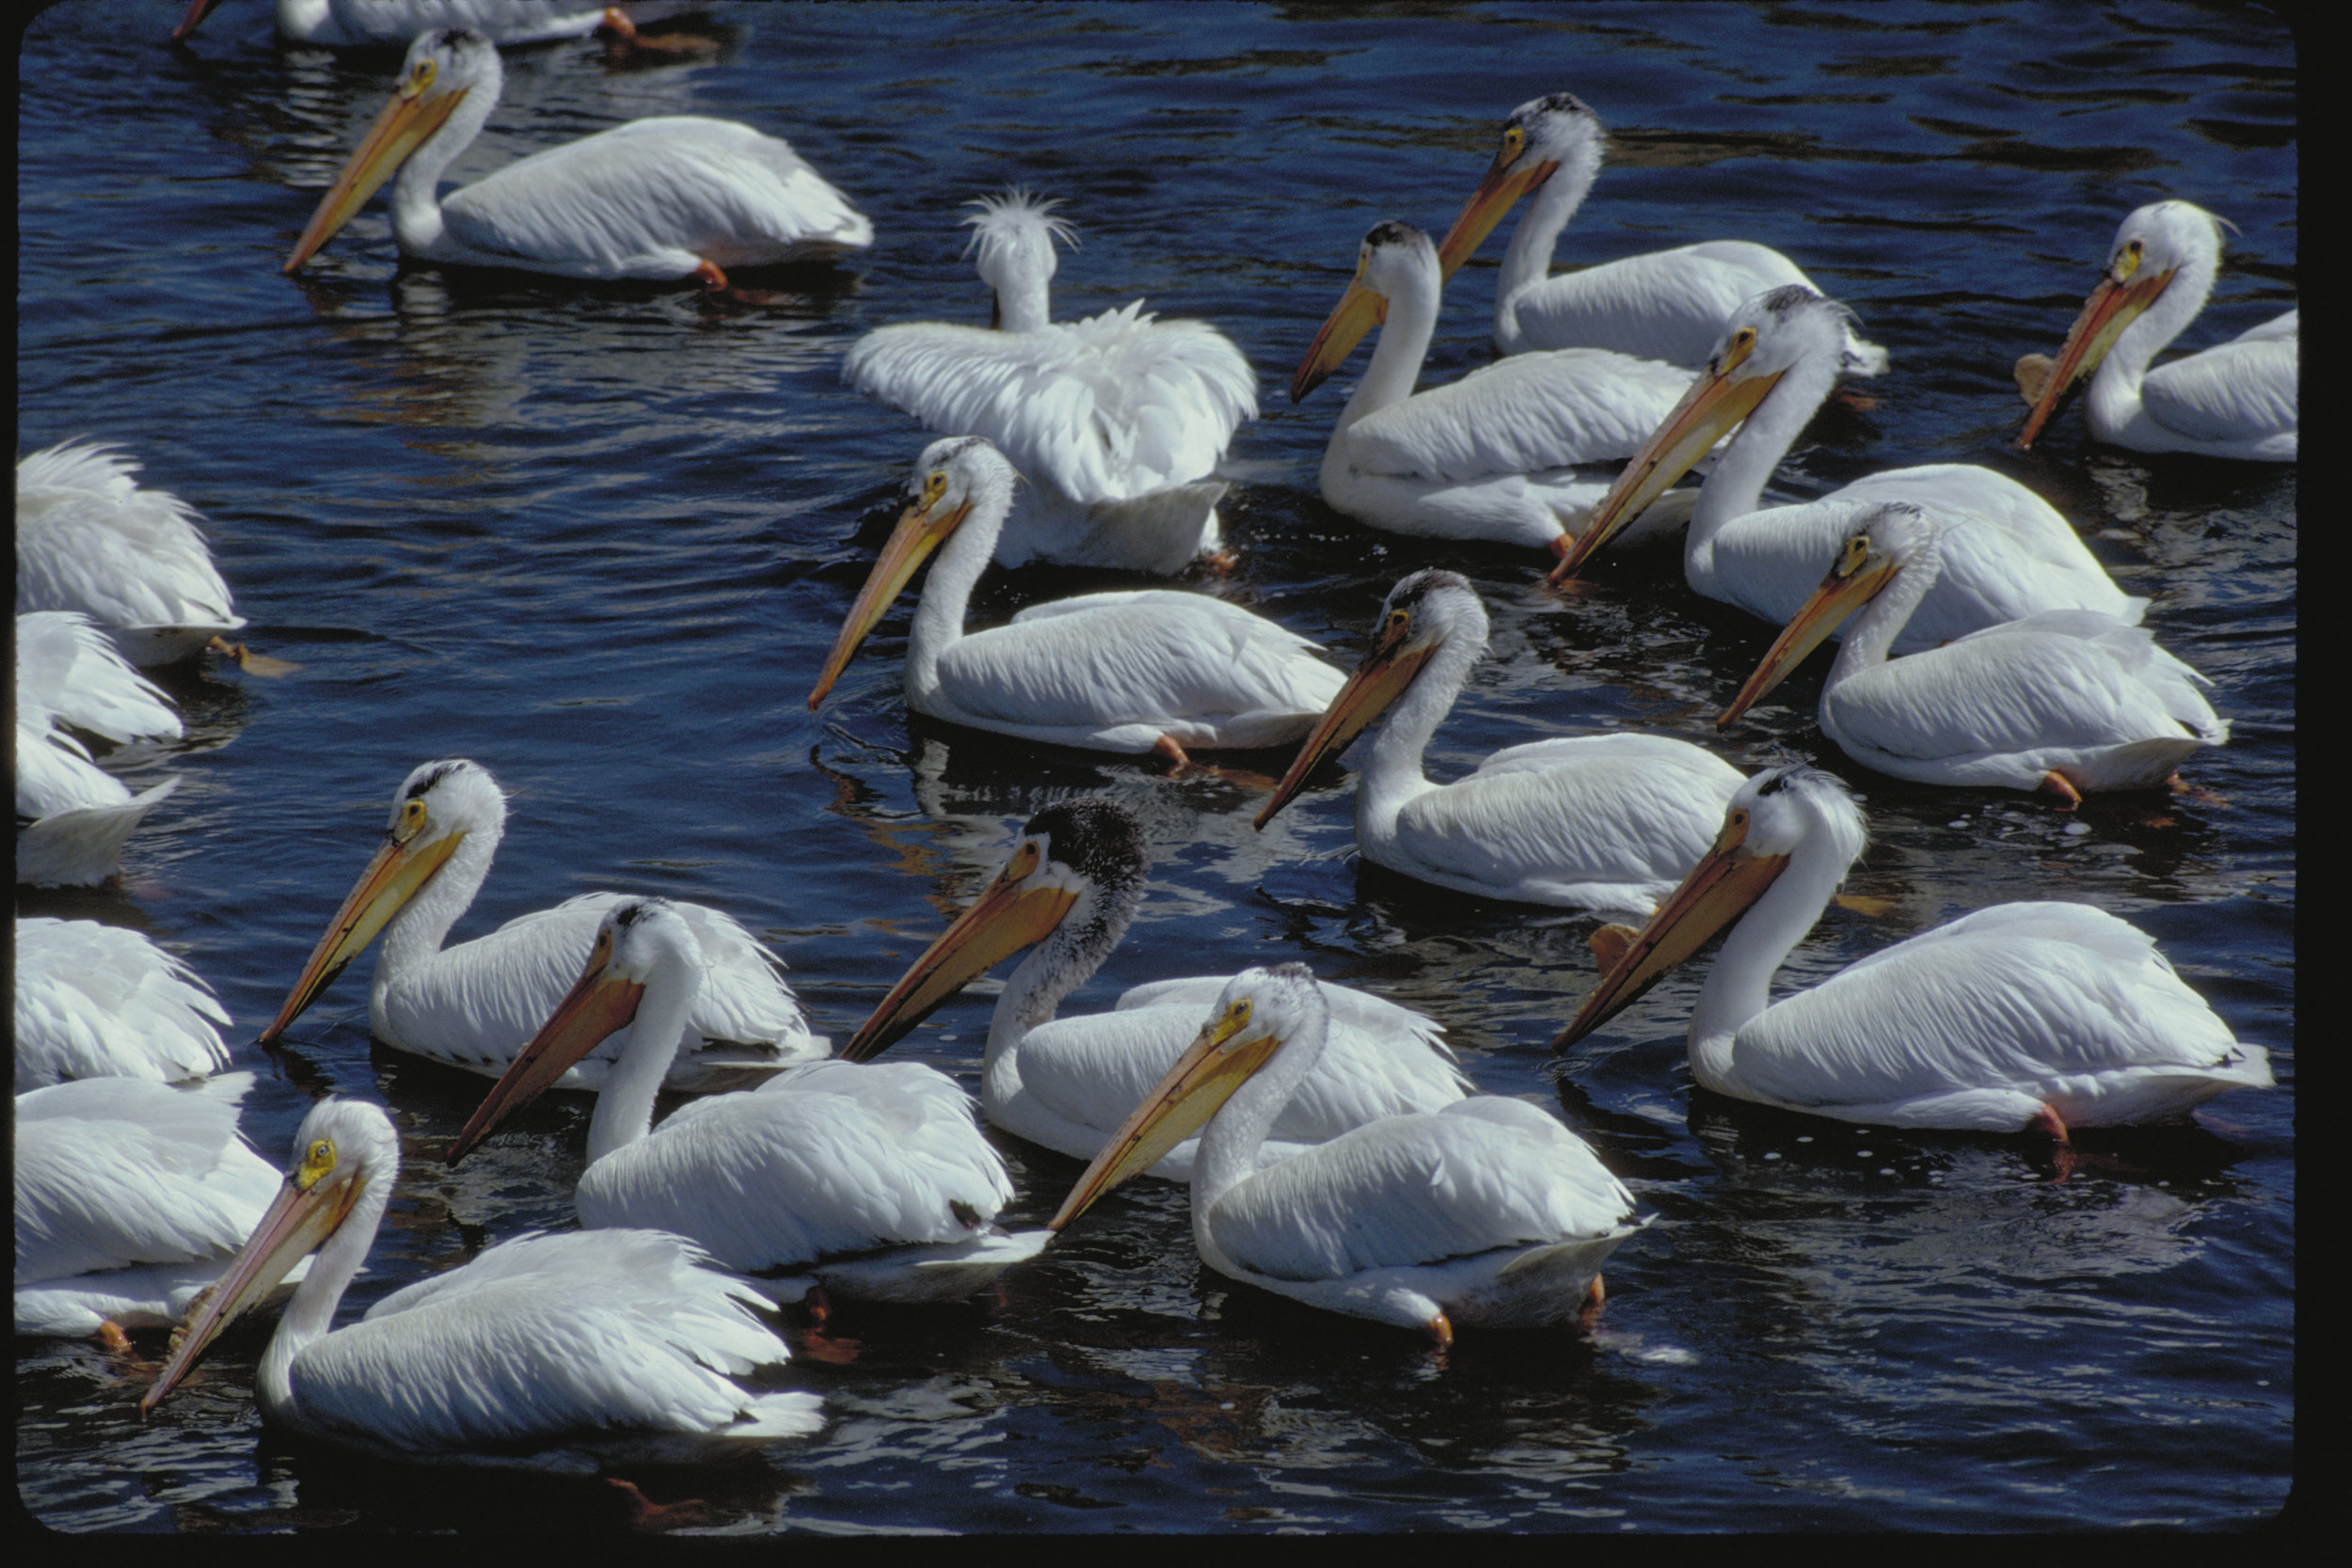 The state-endangered American white pelican breeds along the Columbia River south of the Tri-Cities, and forages much of the year on the Hanford Reach National Monument. Other birds to be found on the National Monument include osprey, egrets, bald eagles, terns, herons, and falcons — just to name a few. Photo by Keith Lazelle.